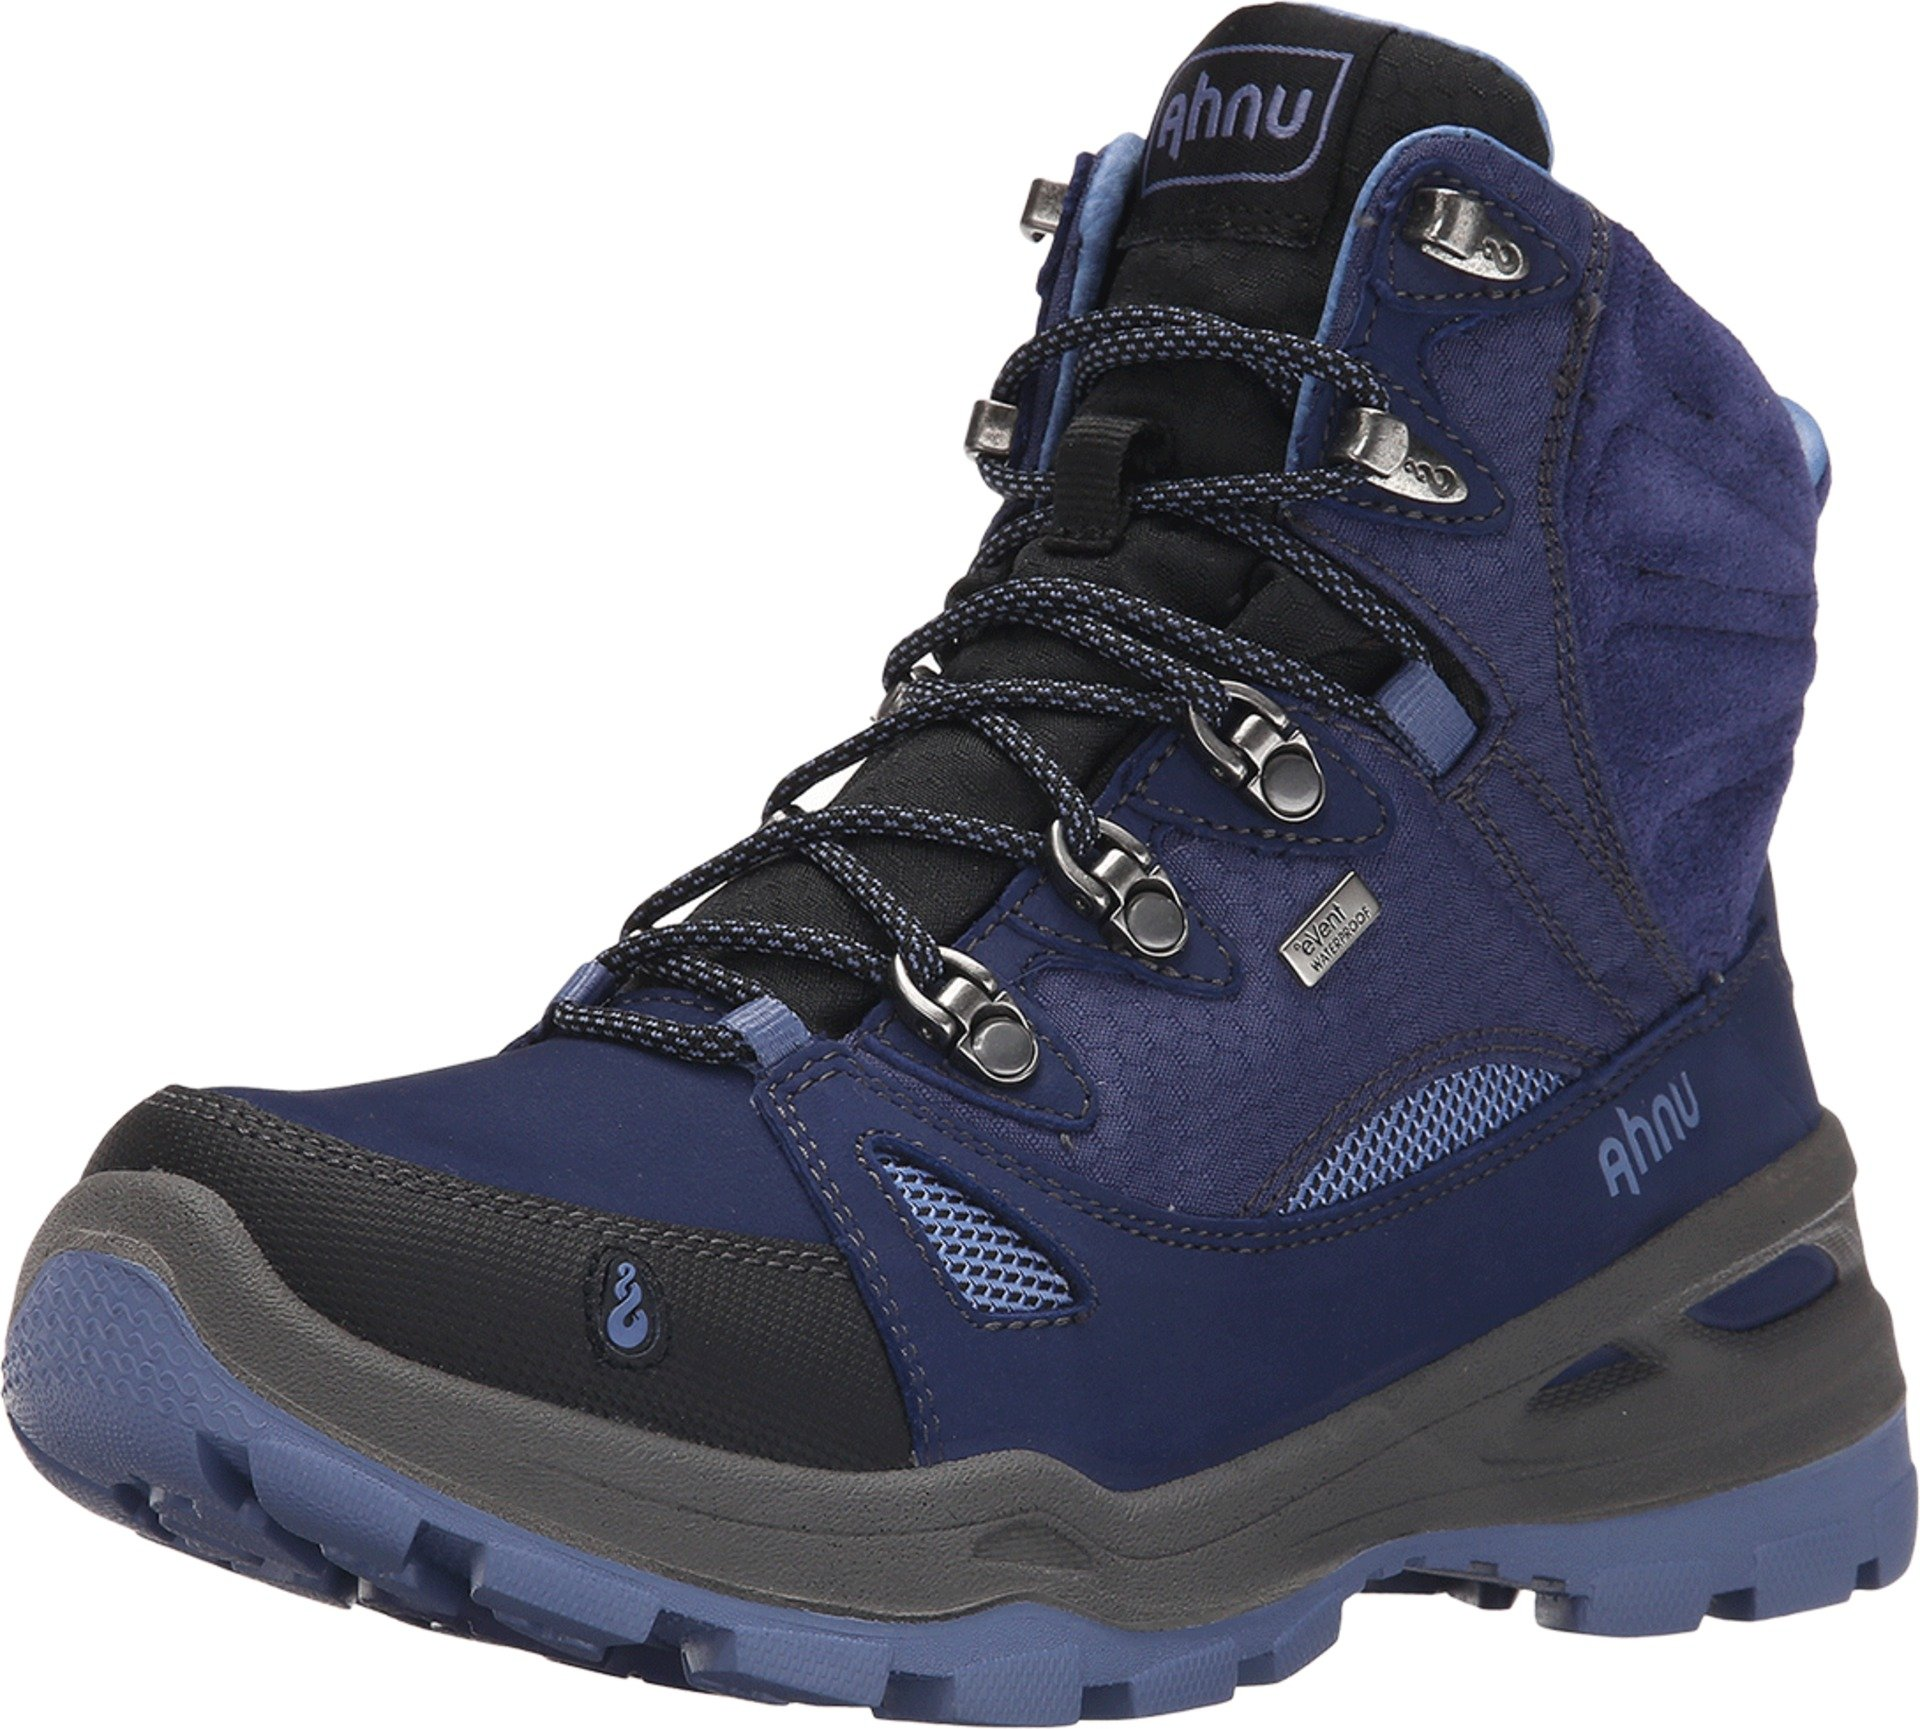 Ahnu Women's North Peak Event Backpacking Boot, Midnight Blue, 8.5 M US